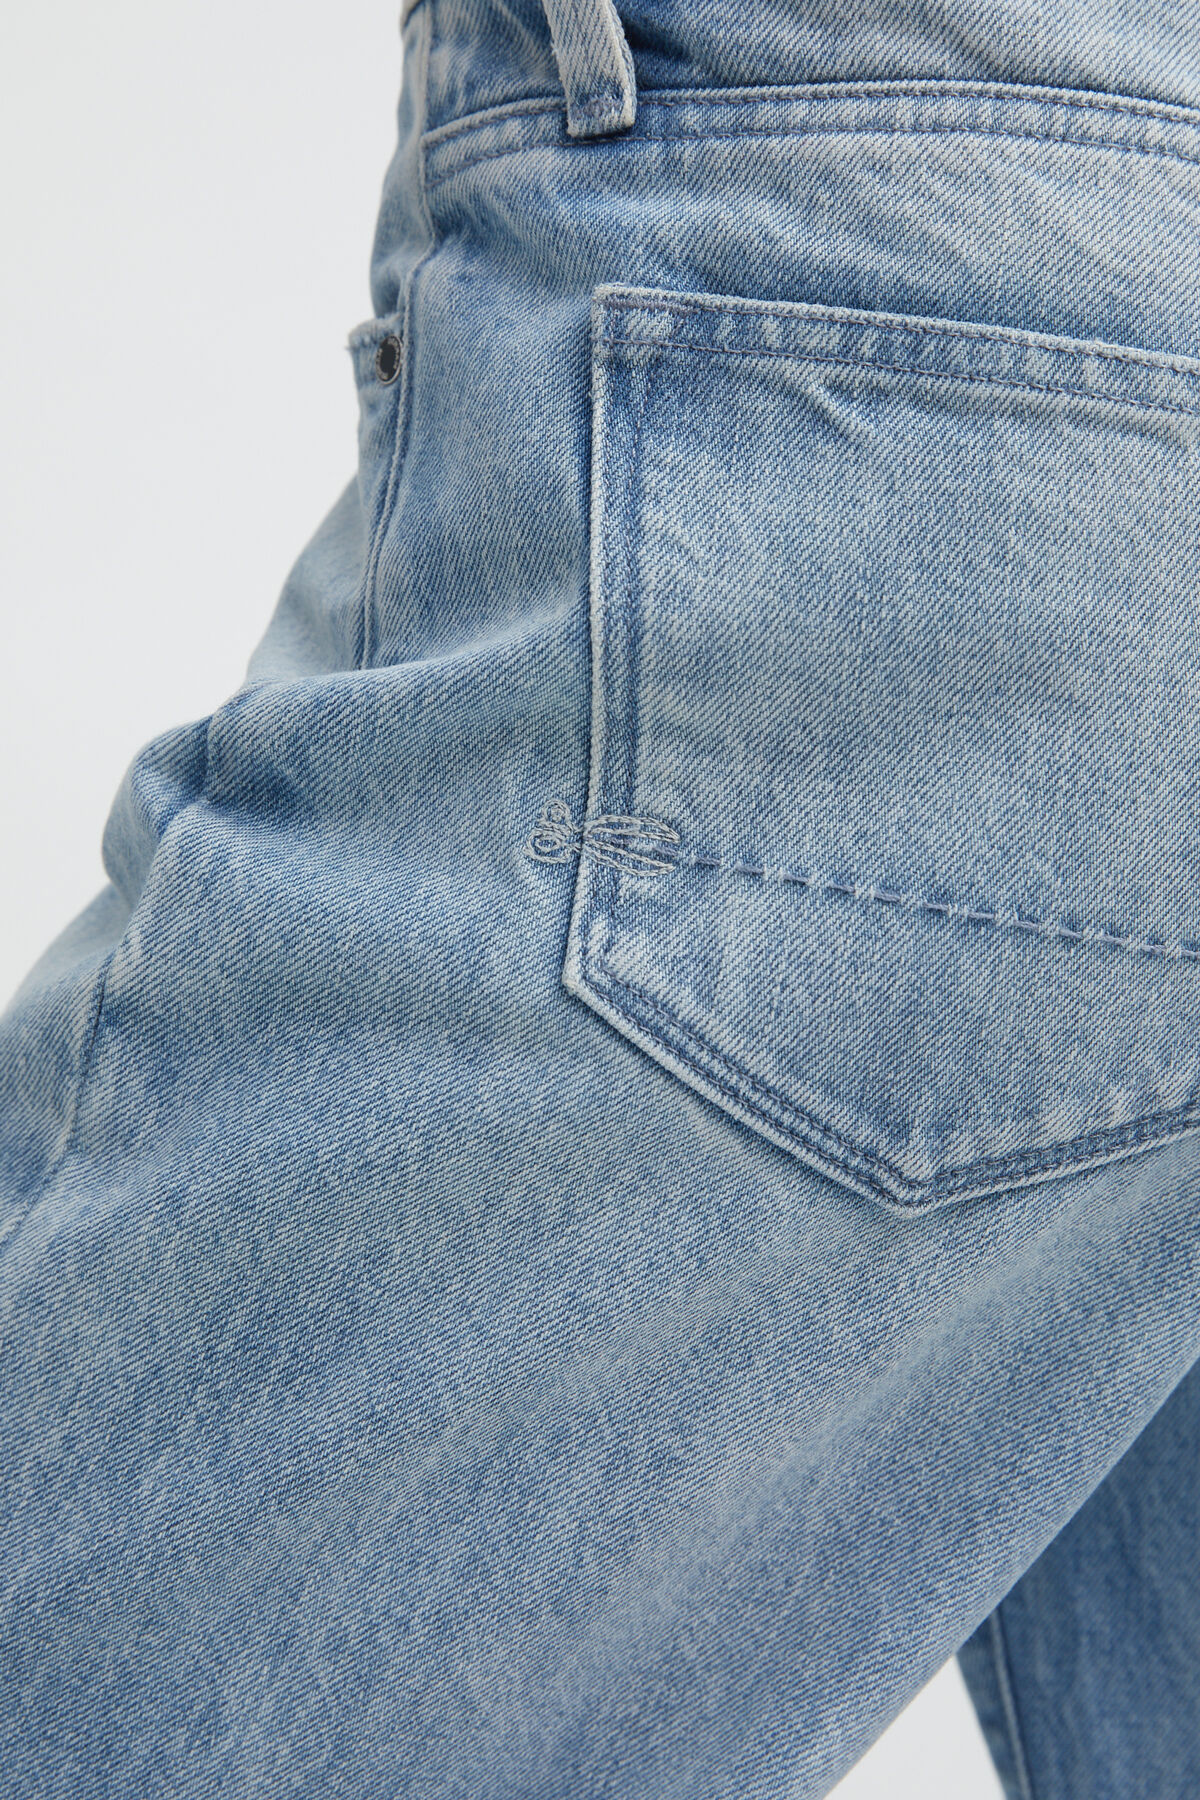 BARDOT STRAIGHT Stonewashed Denim - High-rise, Straight Fit